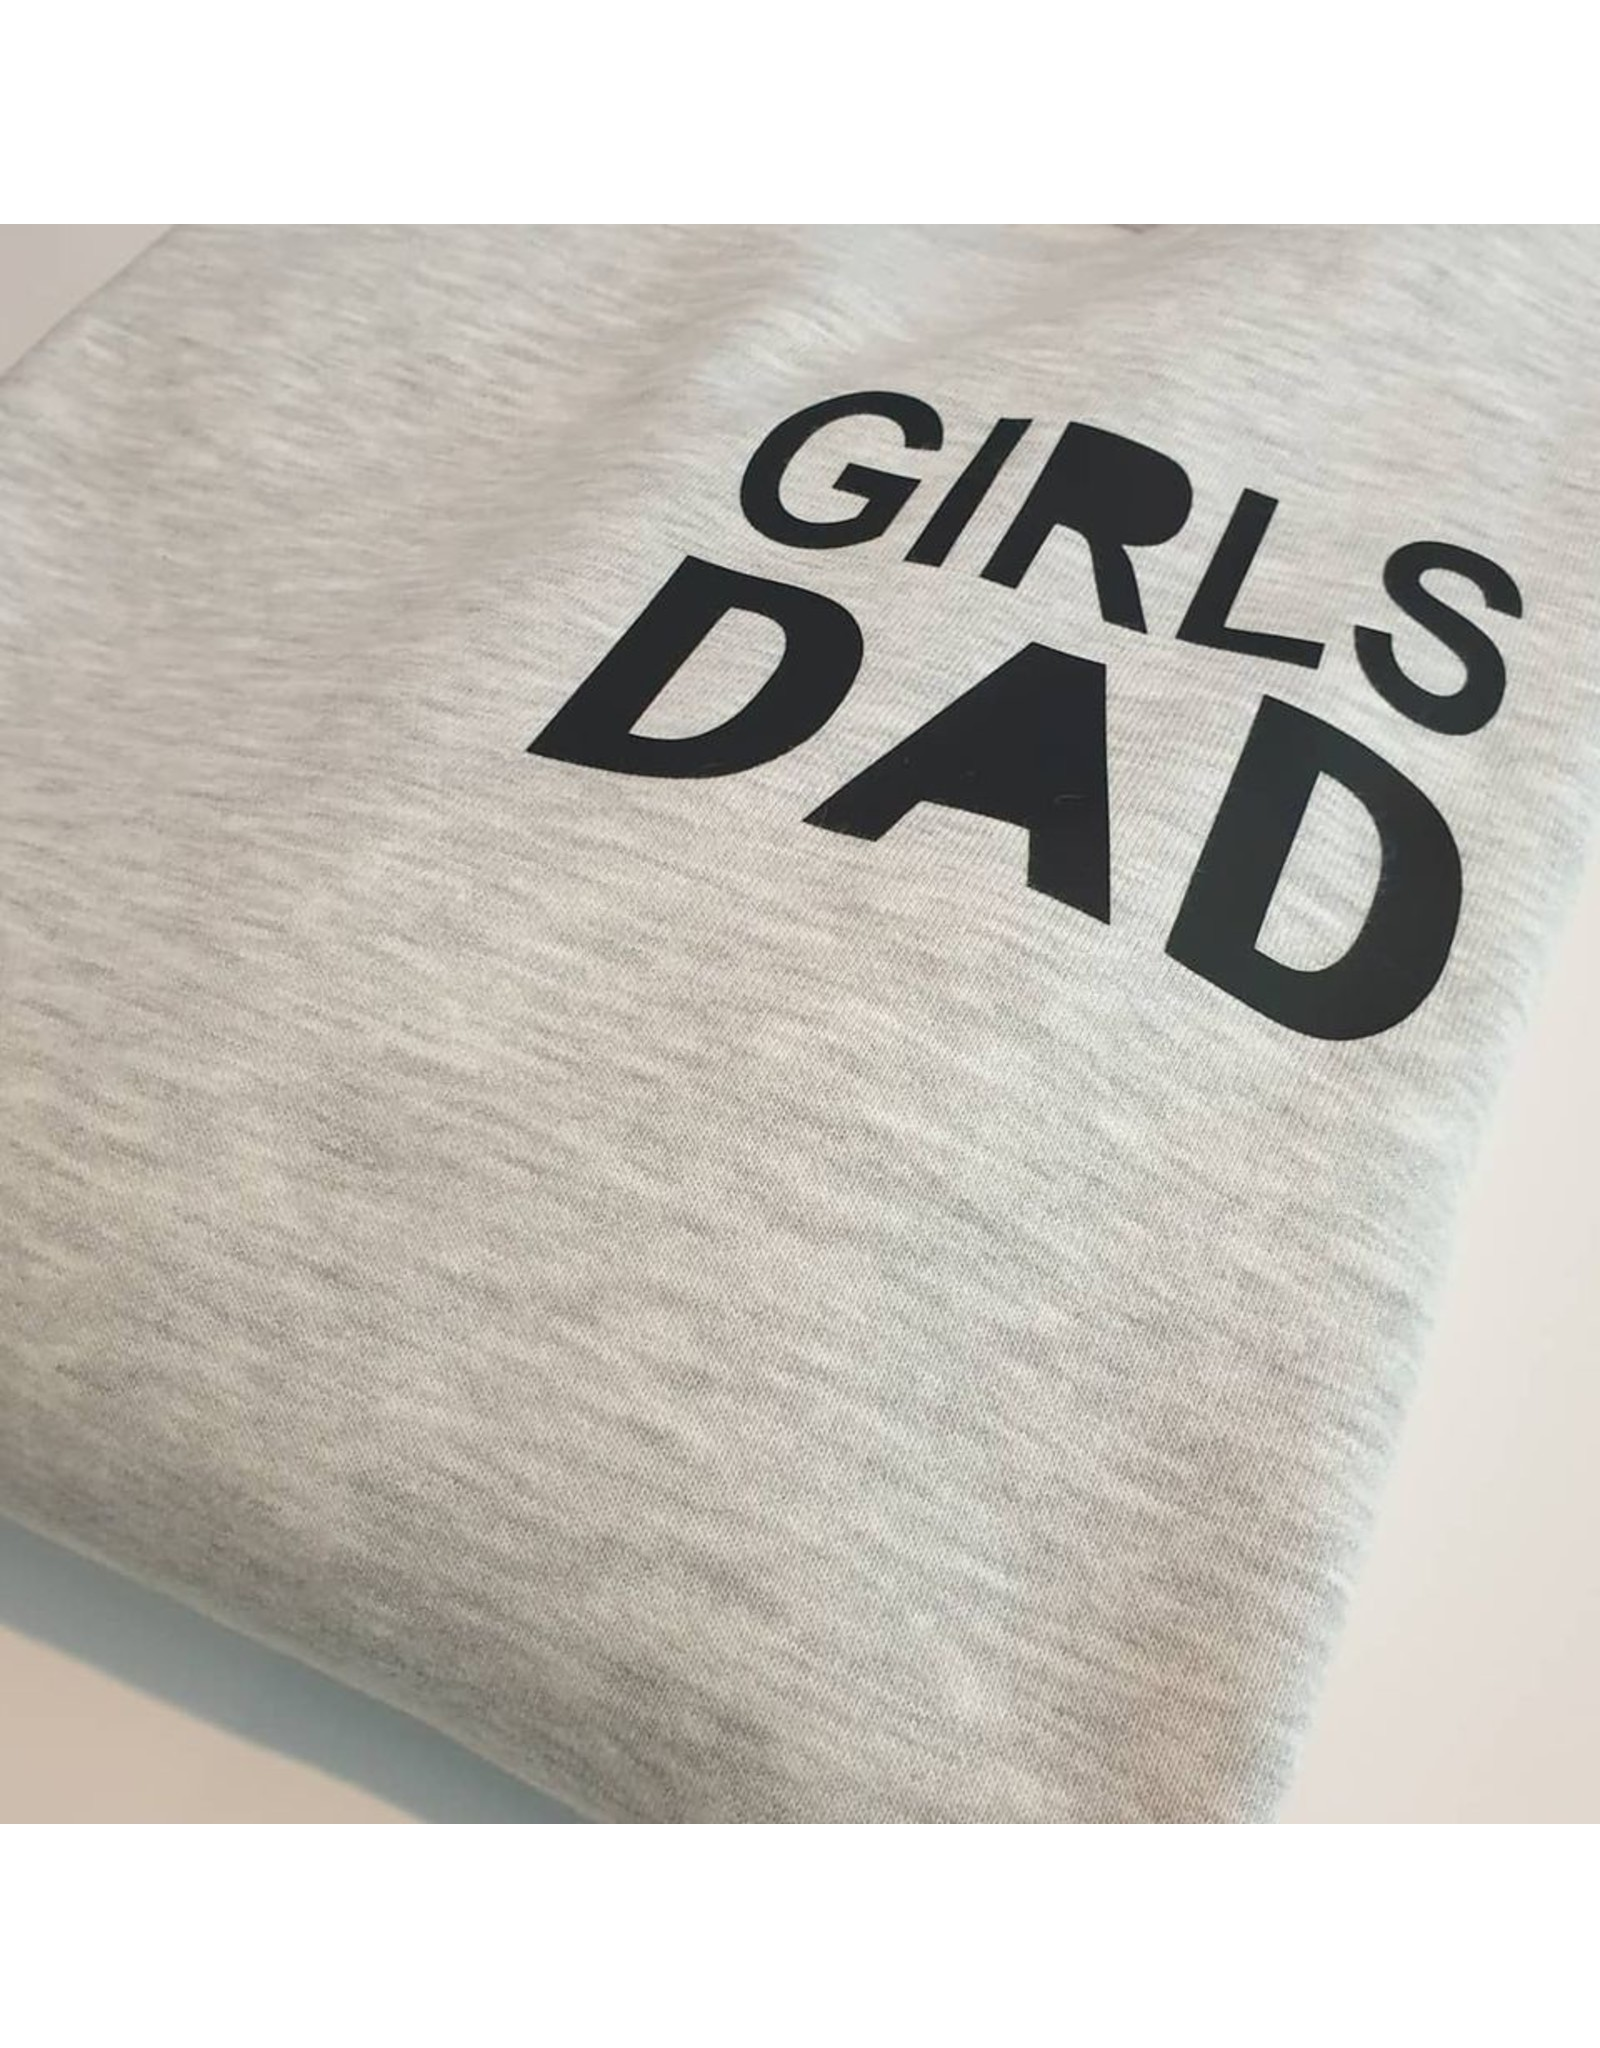 Momof3 Sweater: GIRLS DAD